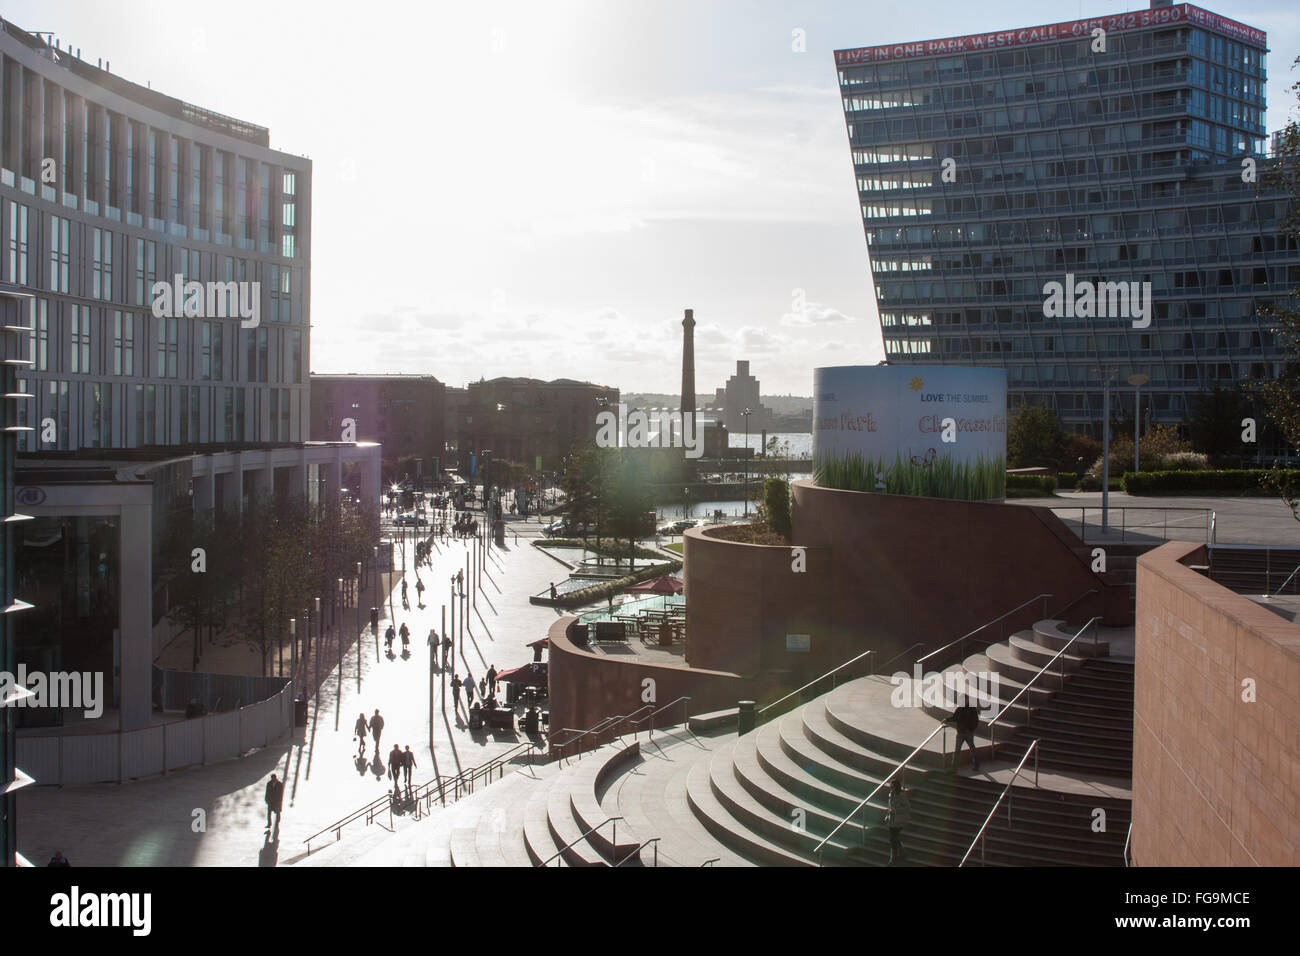 Hilton Hotel on left at Liverpool One Shopping Mall,Centre,Center,England - Stock Image